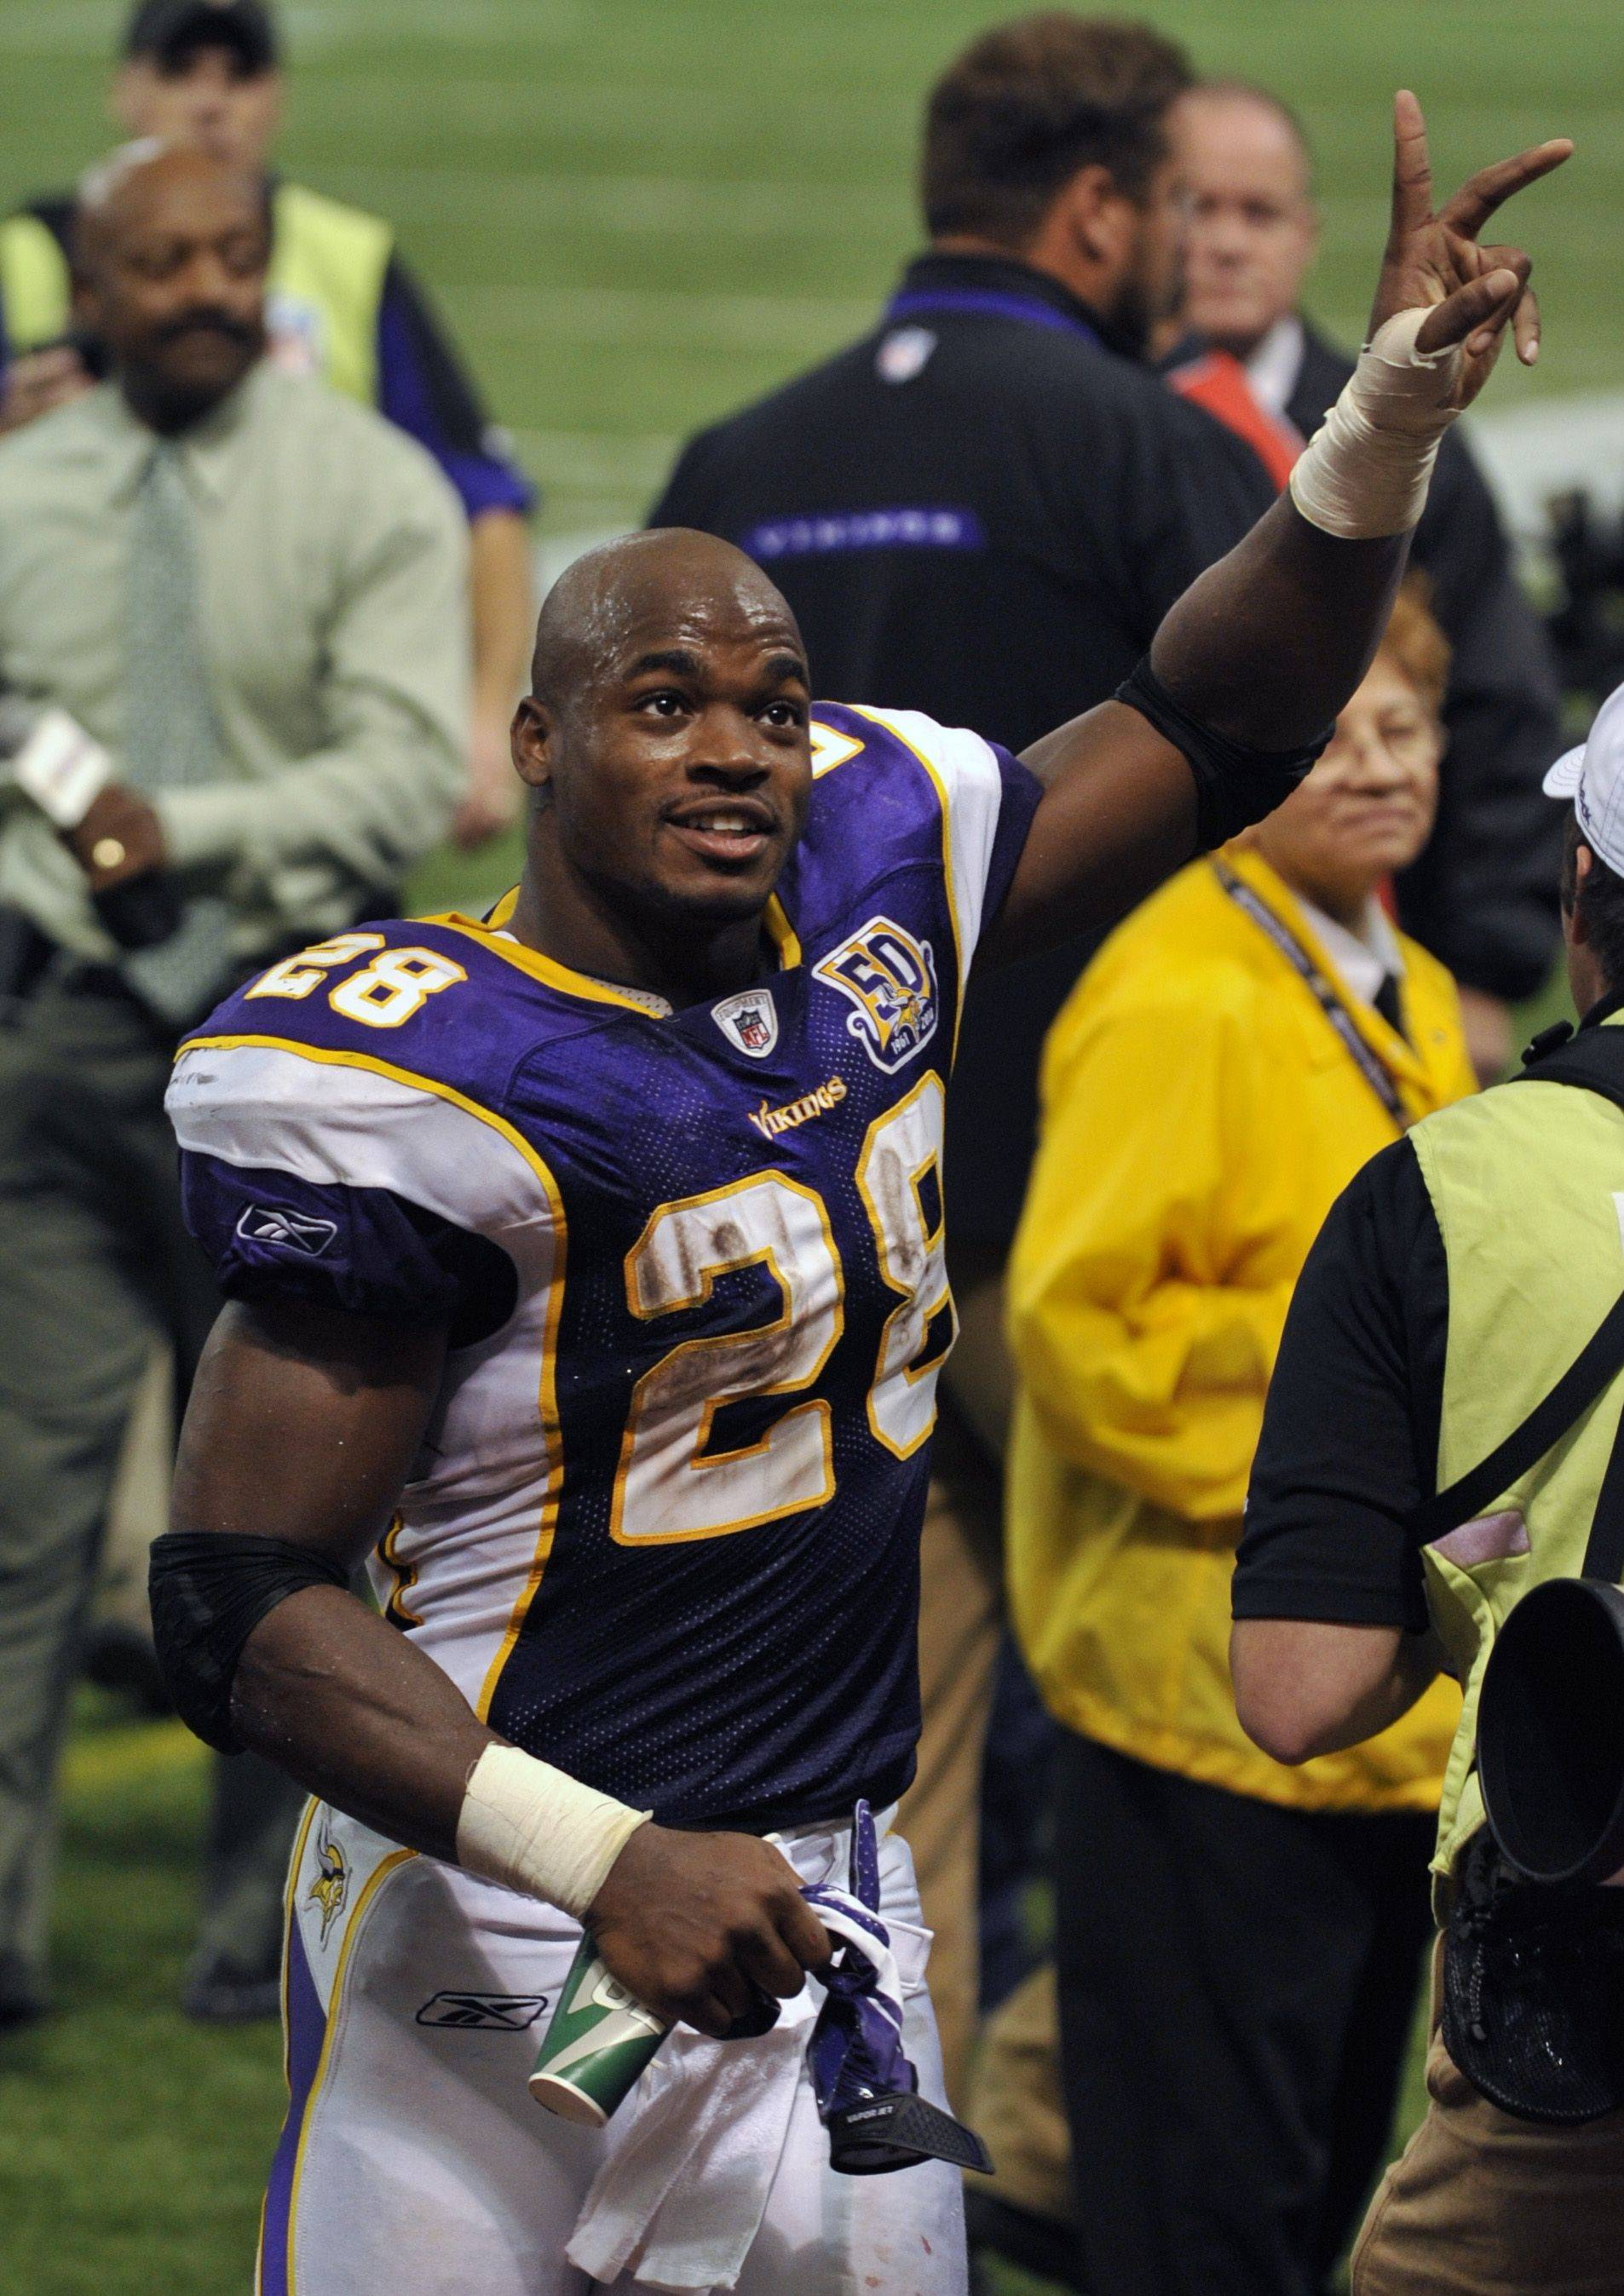 Minnesota Vikings running back Adrian Peterson (28) waves to fans after the Vikings defeated the Detroit Lions 24-10 in an NFL football game last season in Minneapolis. Peterson rushed for 160 yards on 23 carries, including a career-long 80-yard touchdown run.